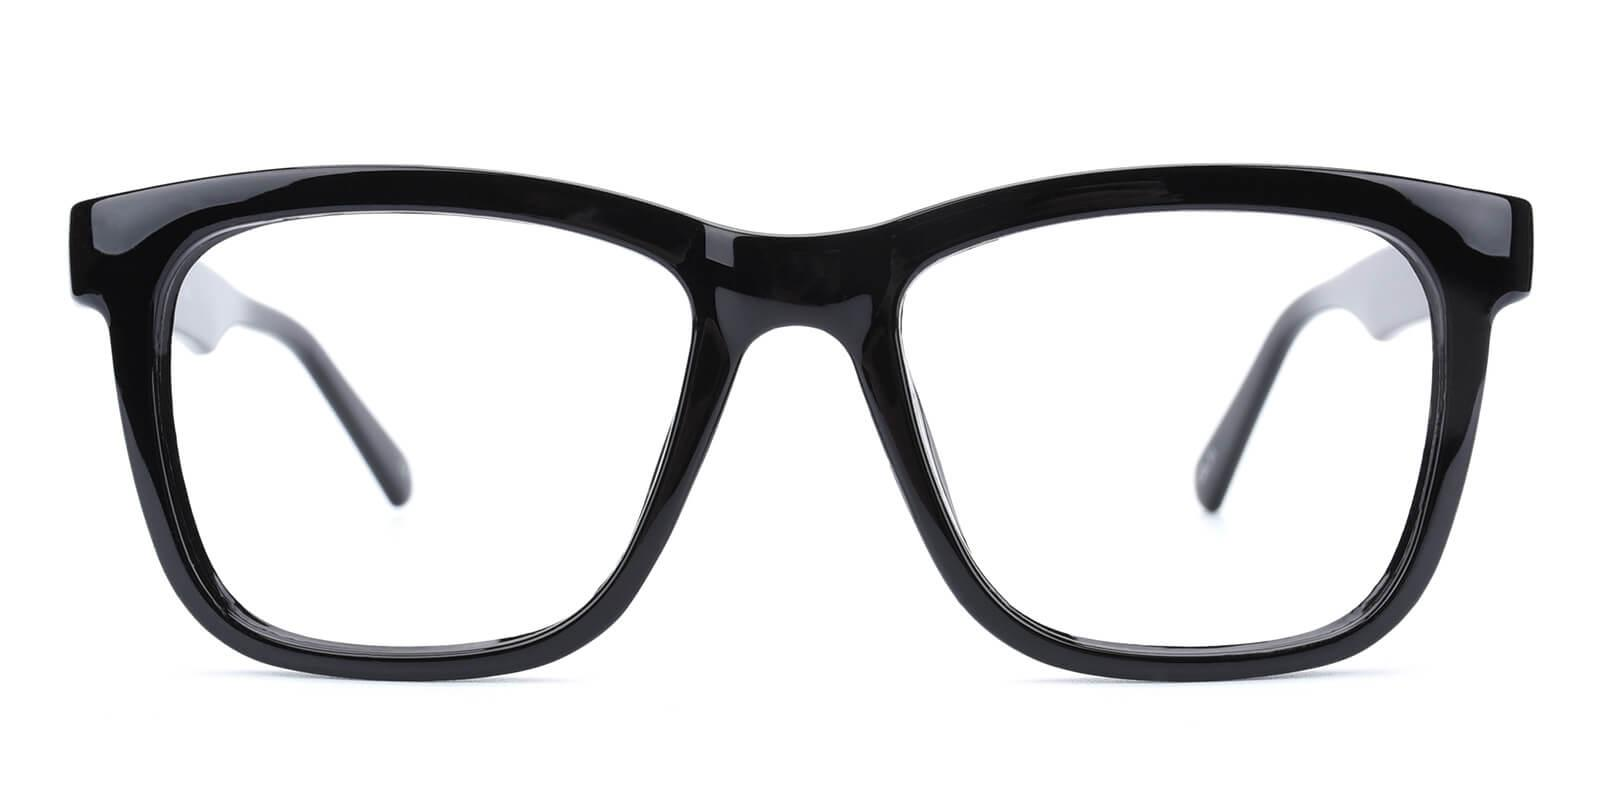 Colaan-Black-Square-Plastic-Eyeglasses-additional2